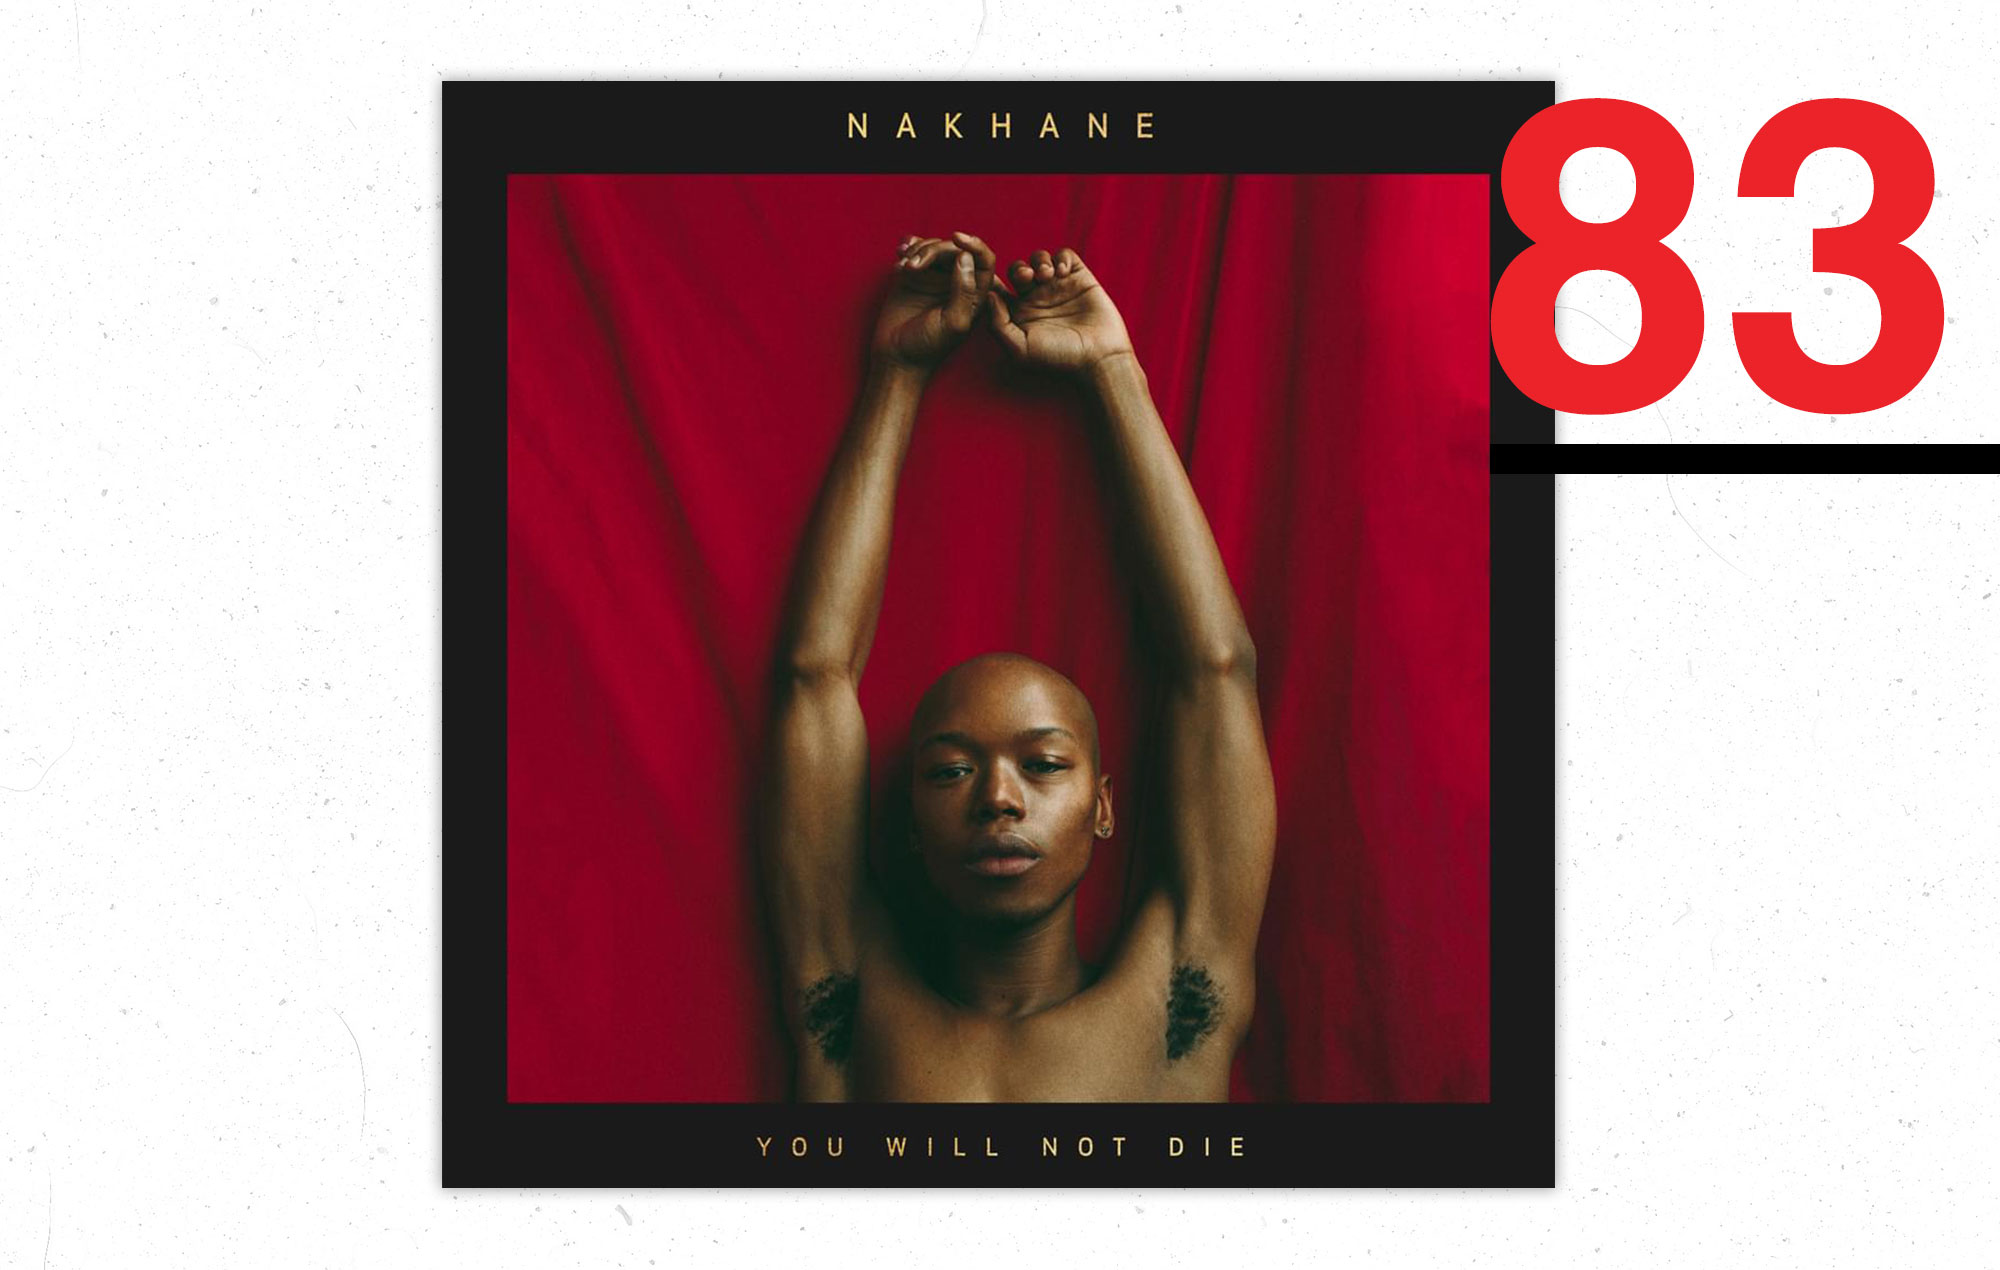 Nakhane | NME albums of 2018